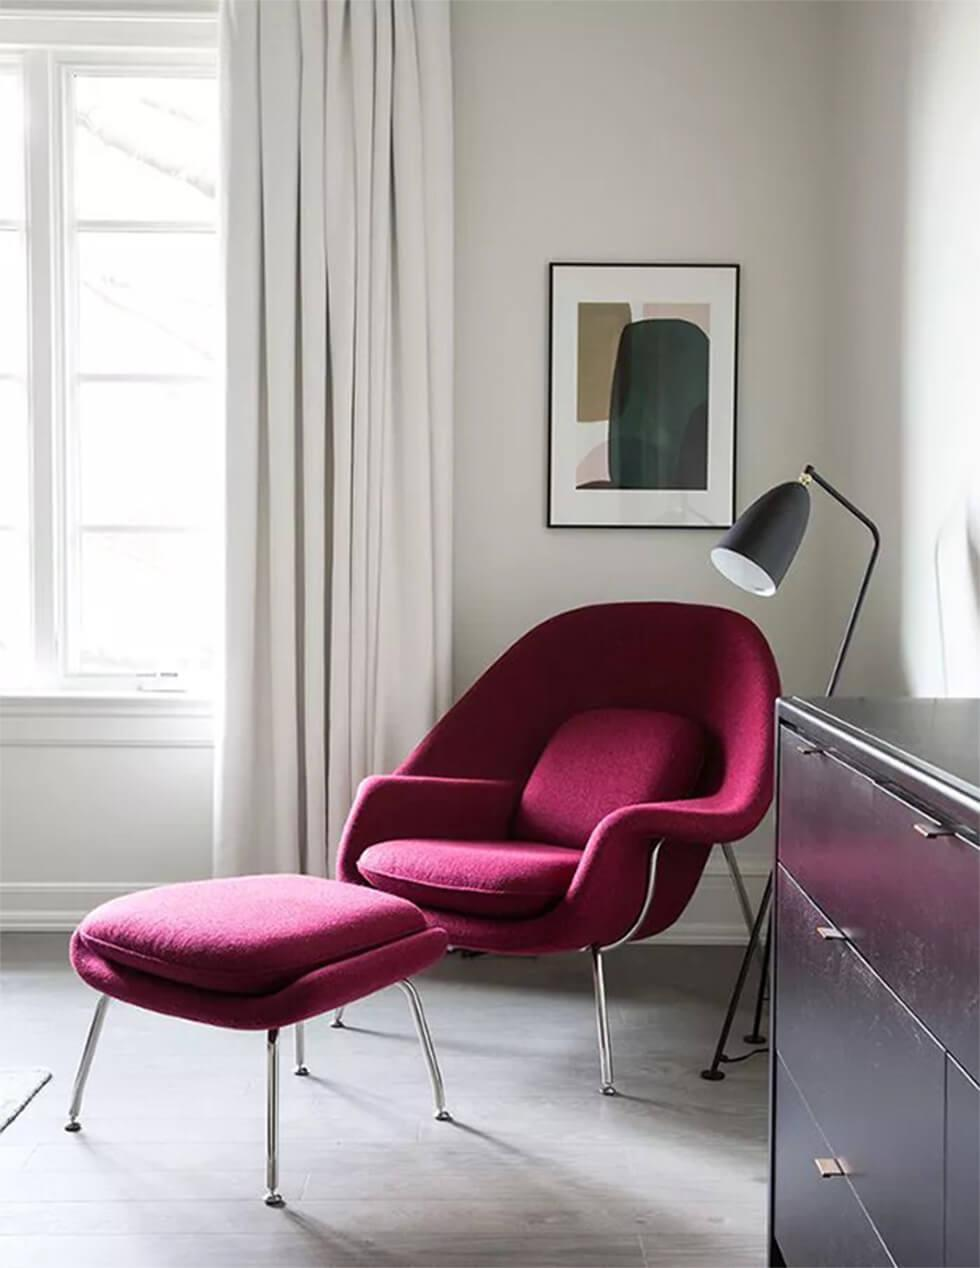 Monochrome living room with statement red armchair